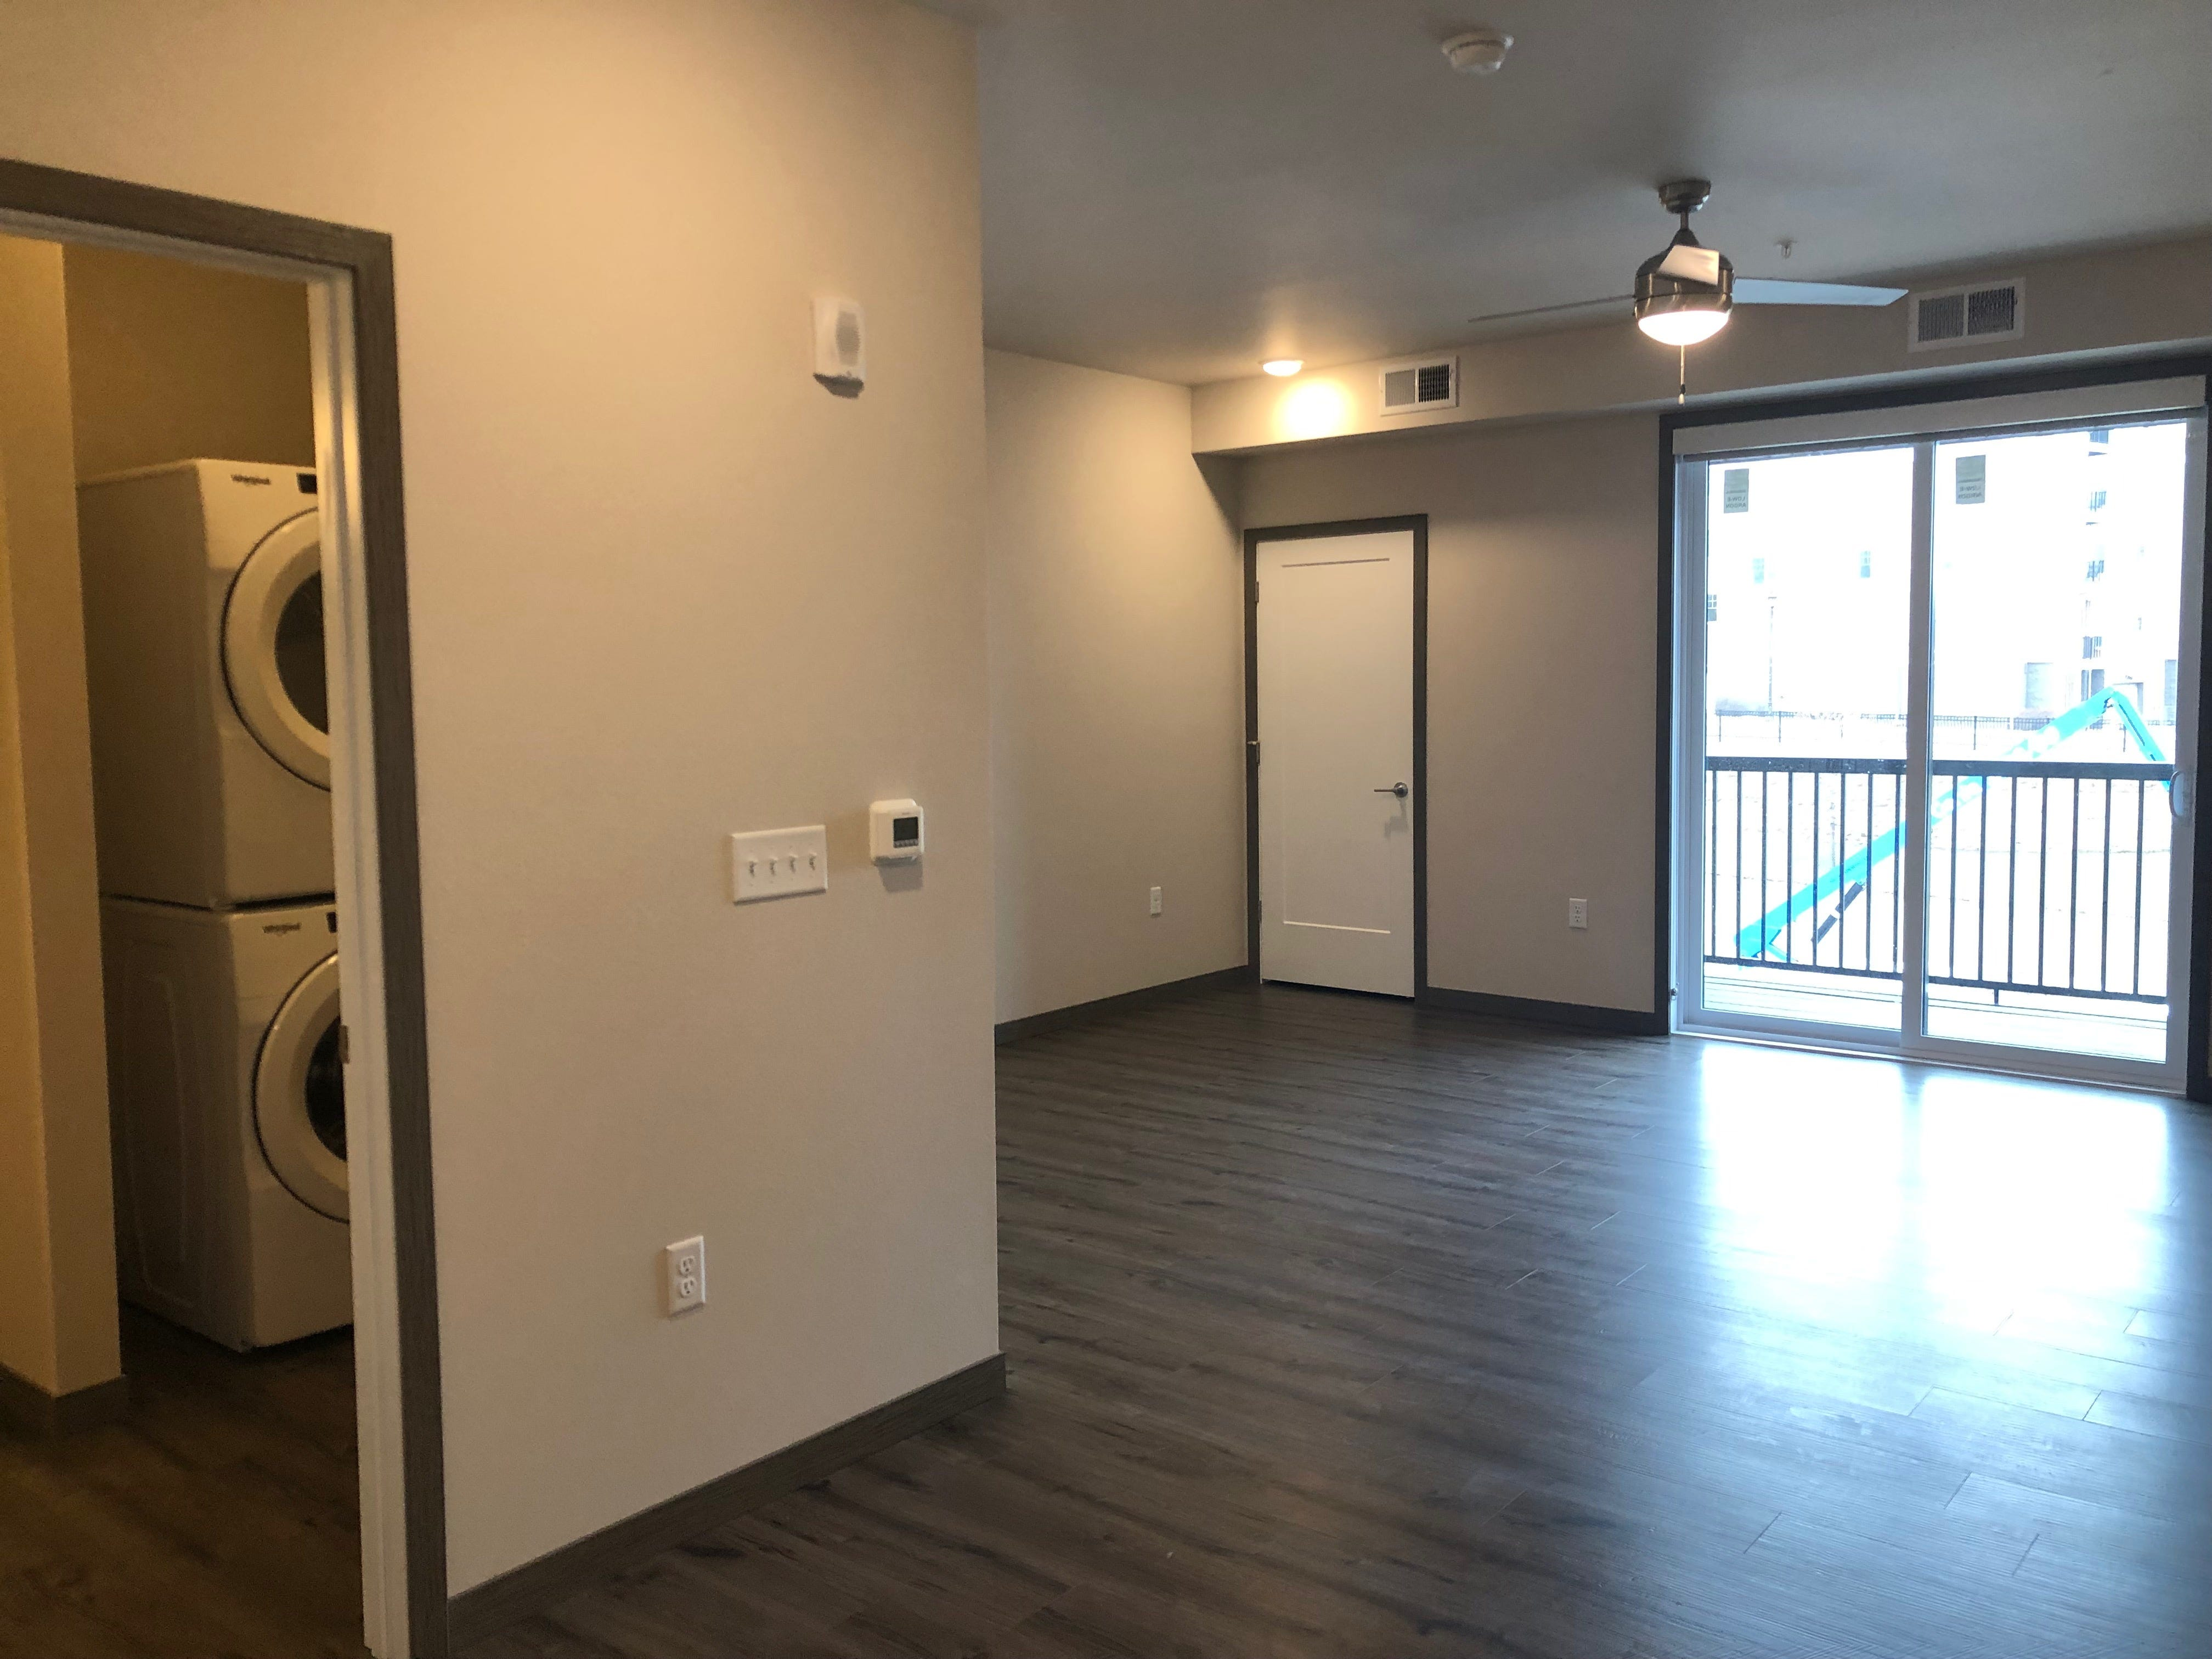 A studio apartment in the Urban West complex.